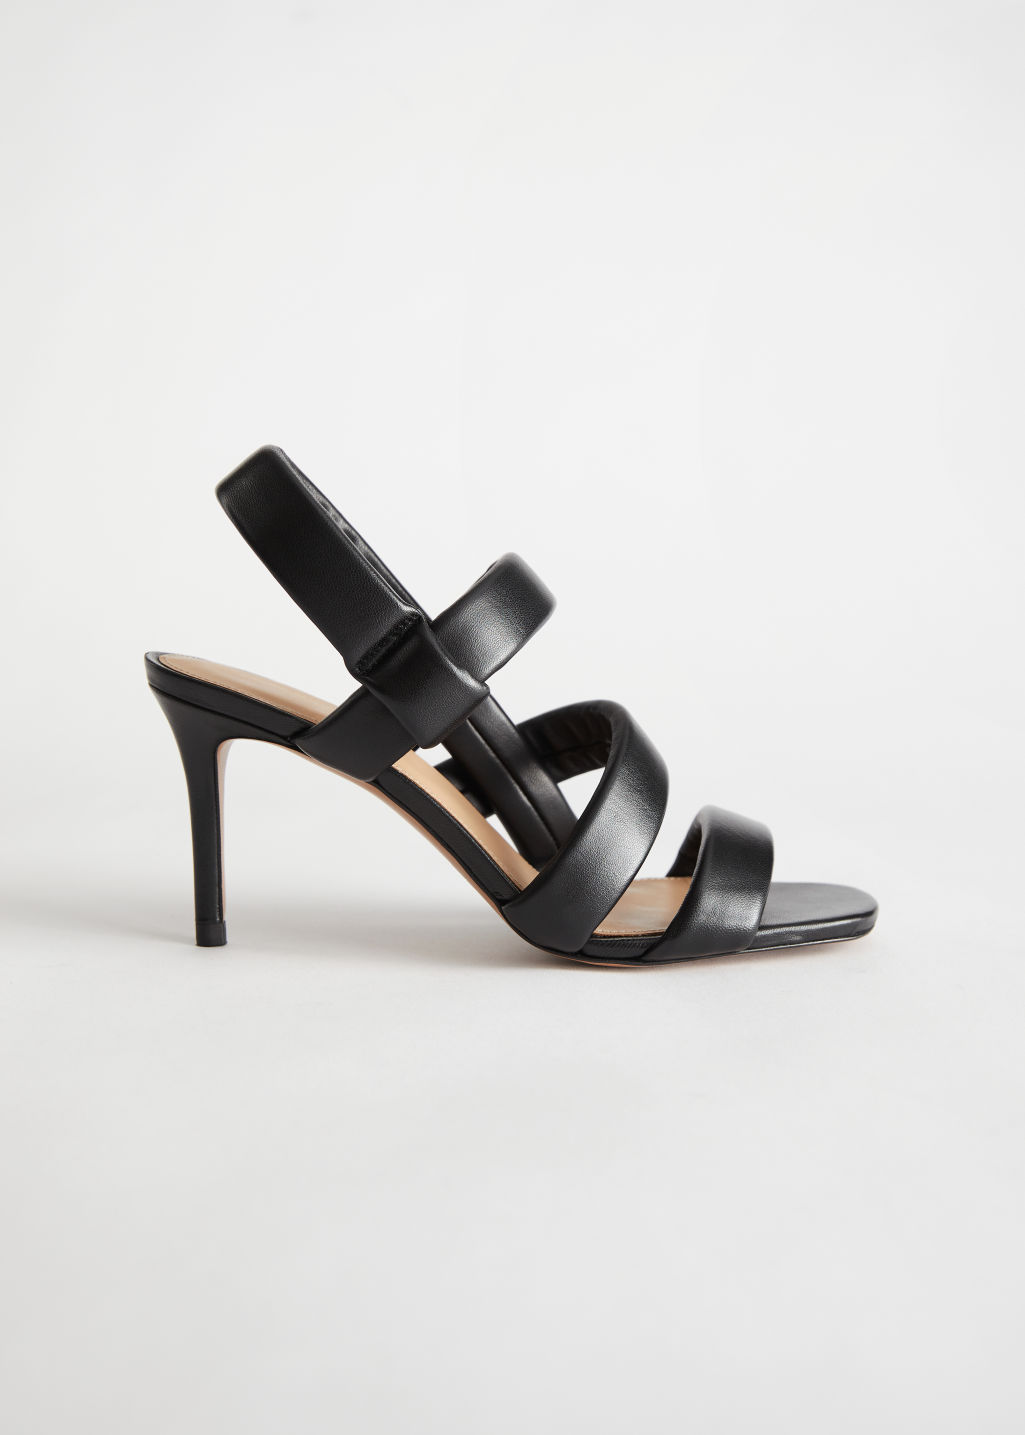 StillLife Left Image of Stories Padded Leather Heeled Sandals in Black